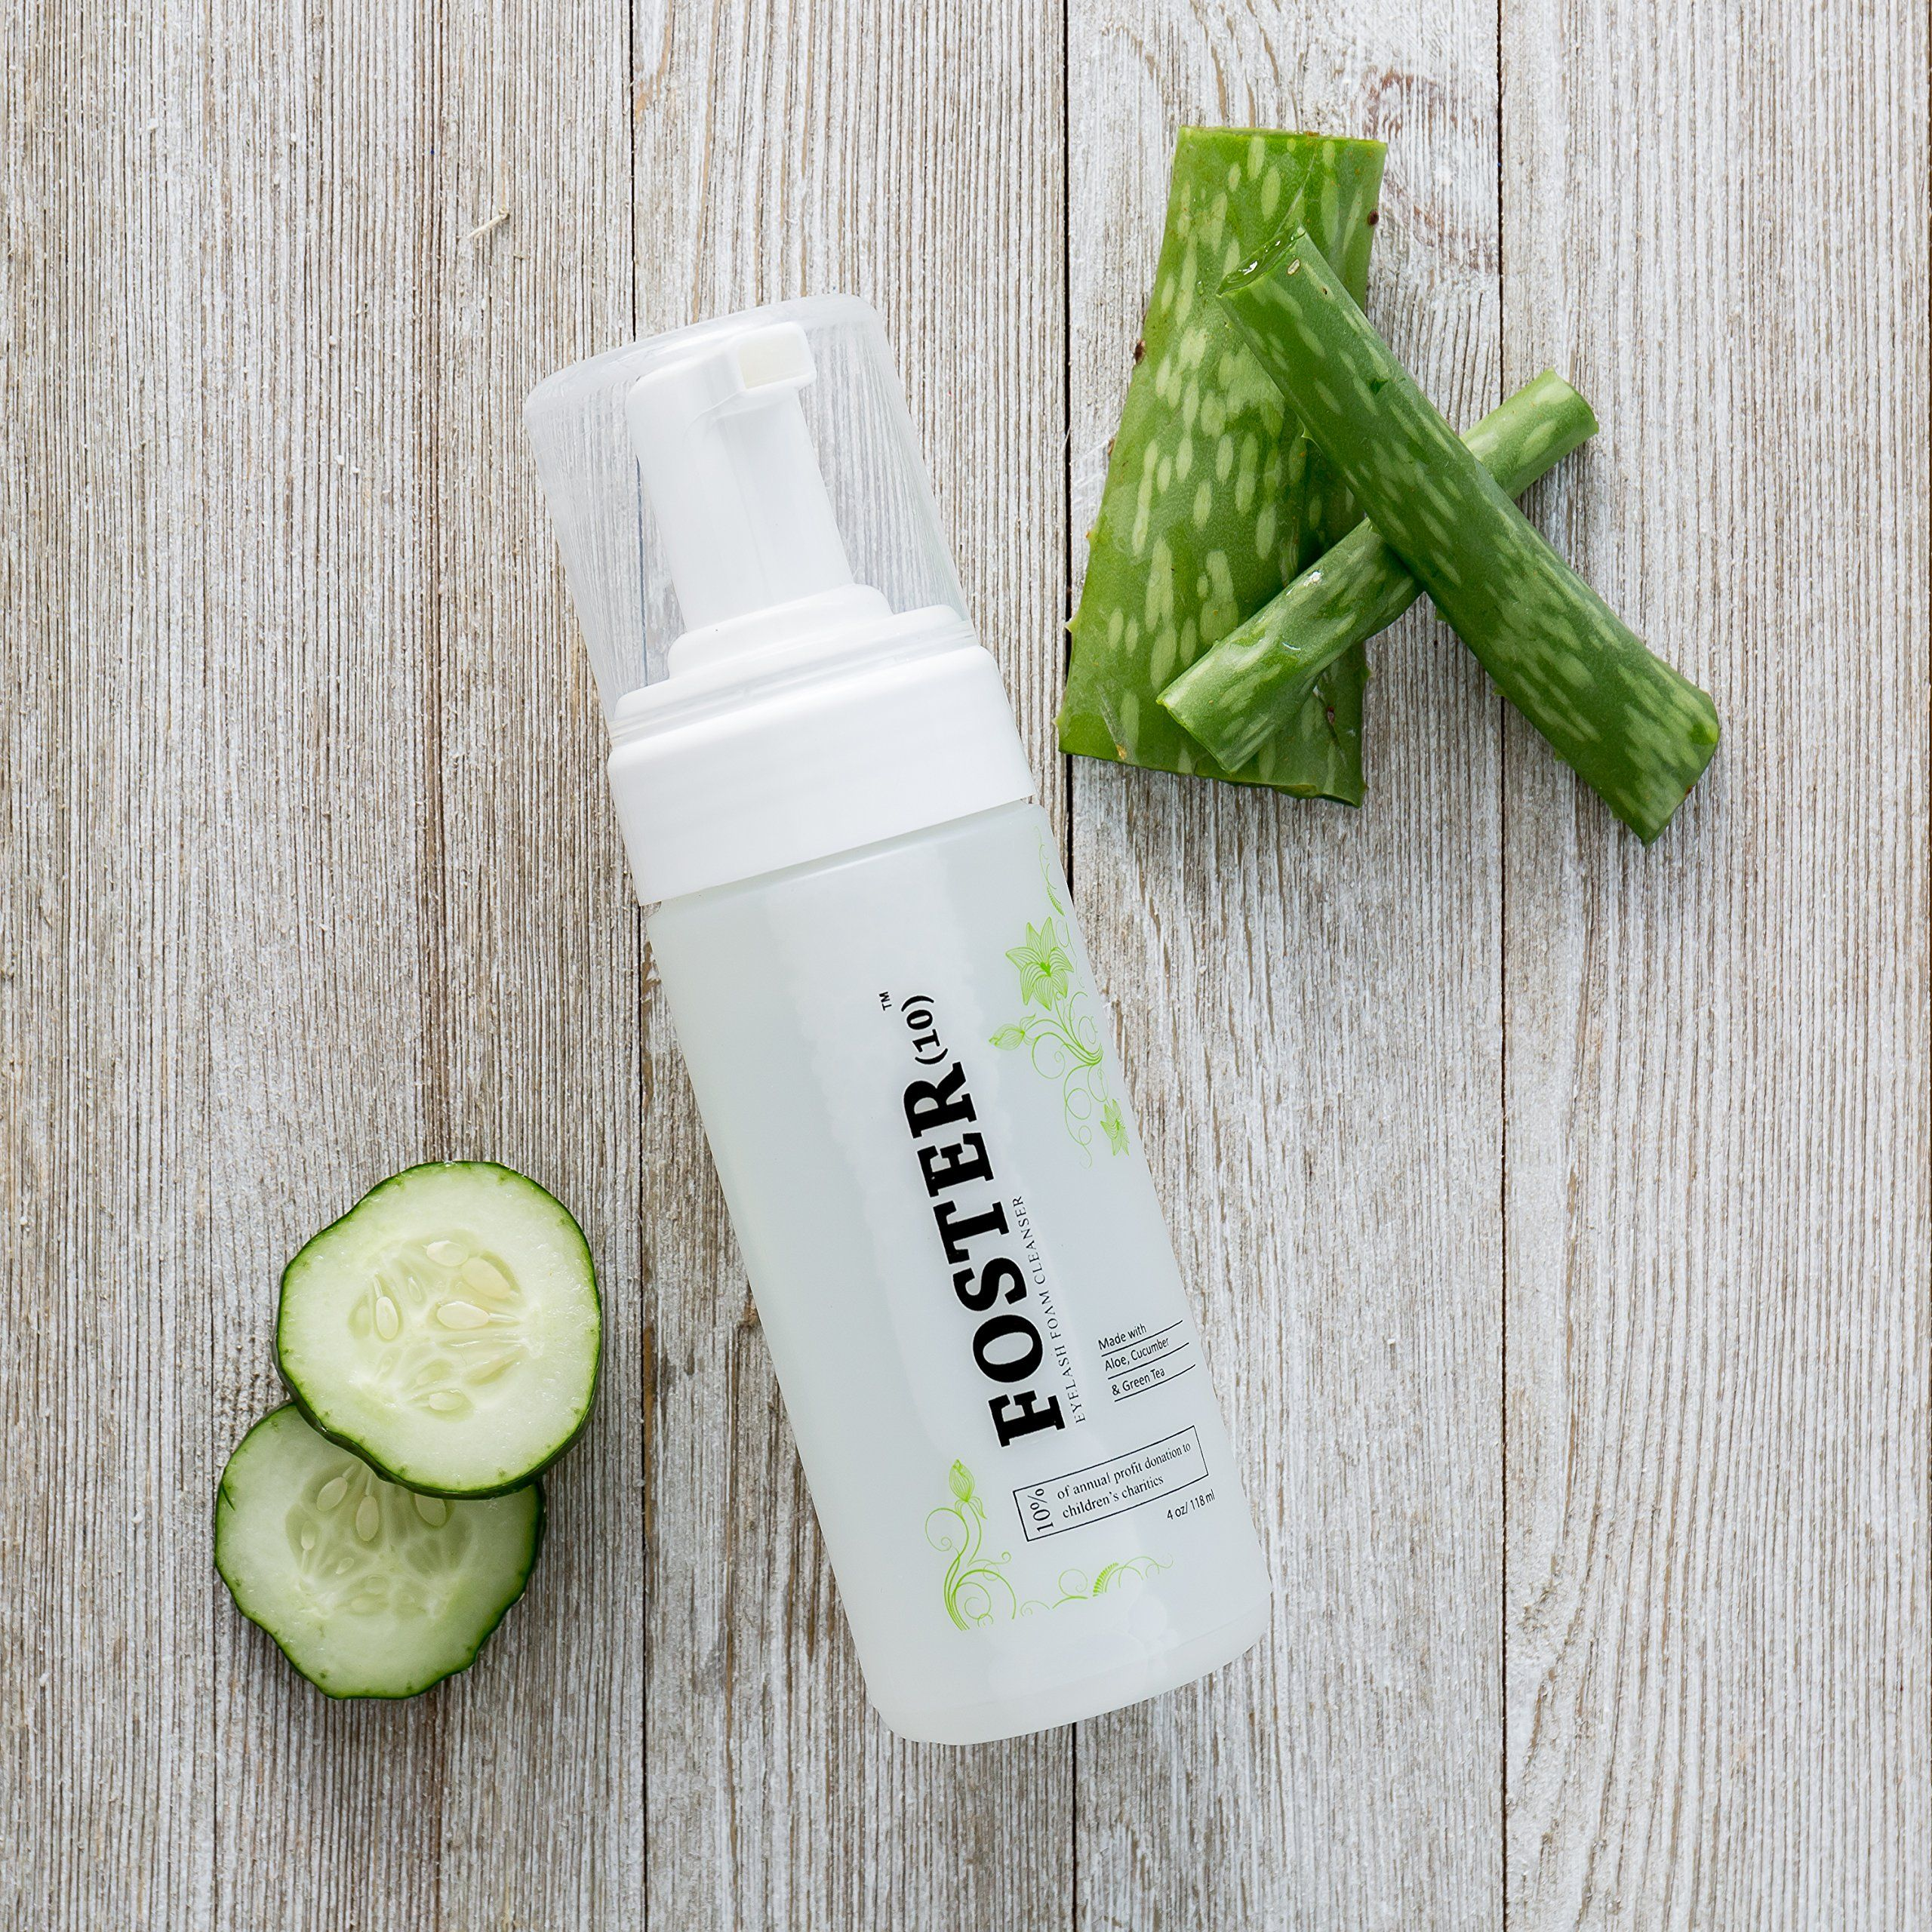 Foster10 eyelash extension cleanser foaming safe for daily